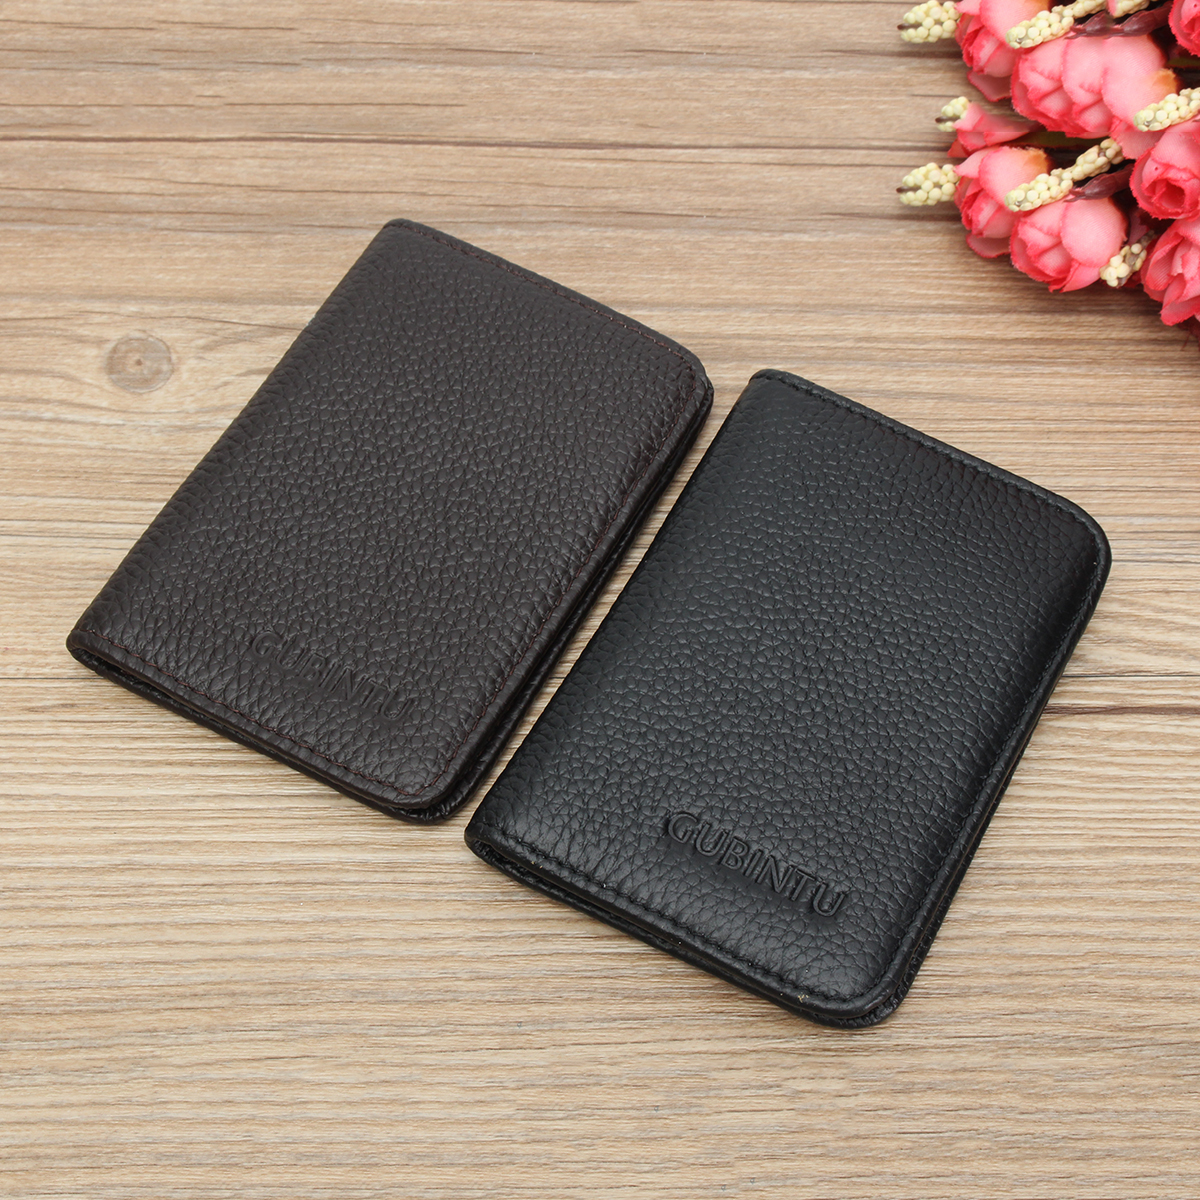 Men Leather RFID Blocking Wallet Bifold Magic Money Clip Slim ID Credit Bank Card Holder